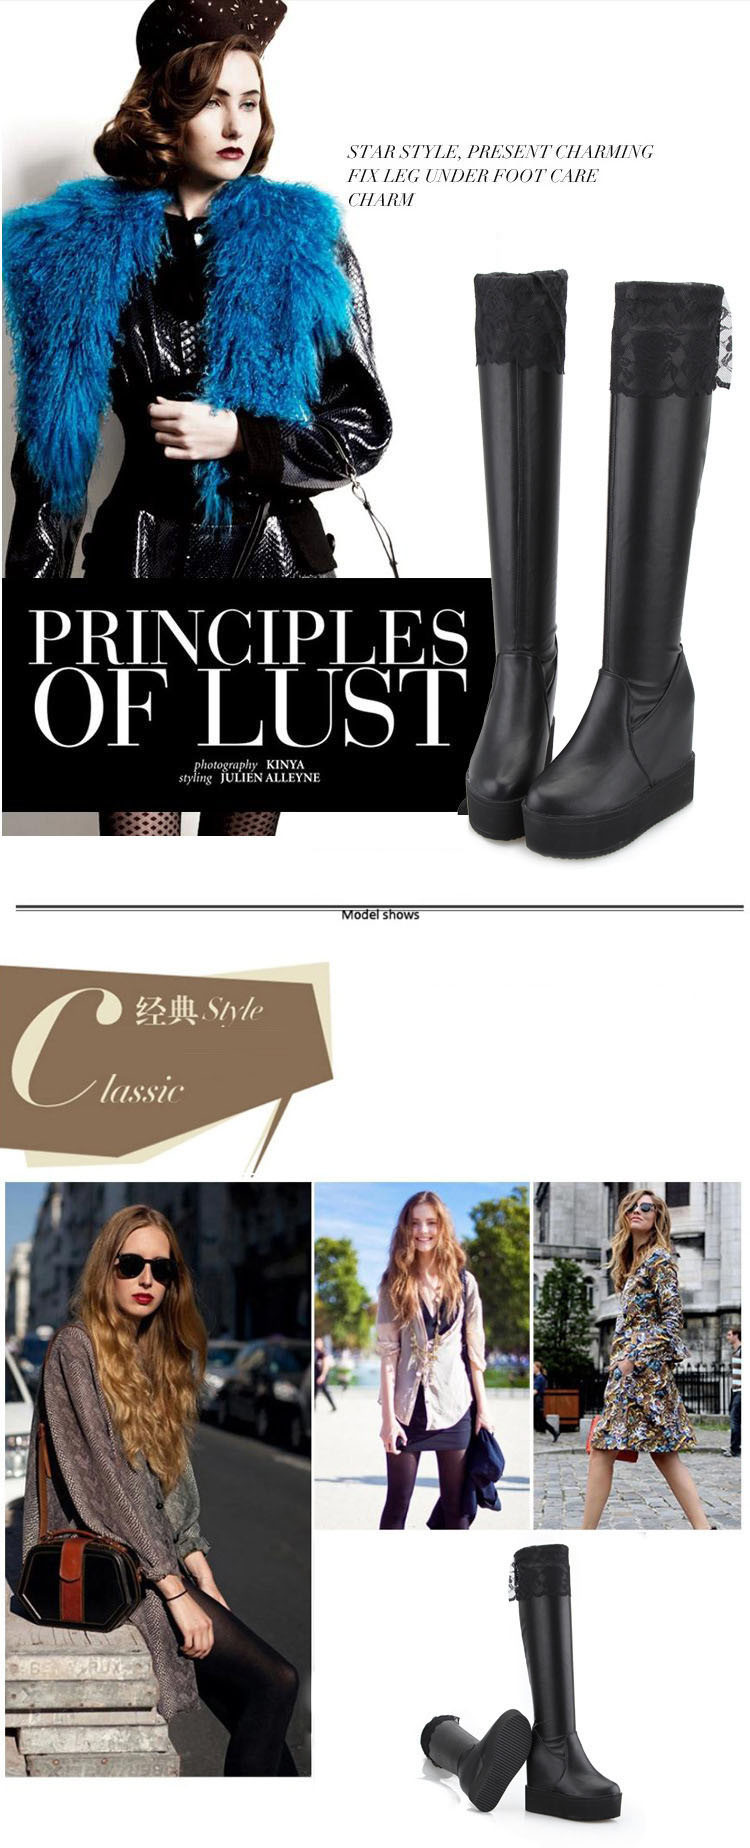 Fashion Nice Boots Elastic Over The Knee Boots Long Barreled Boots women's Shoes Fashion Confortable Female Shoes078  80